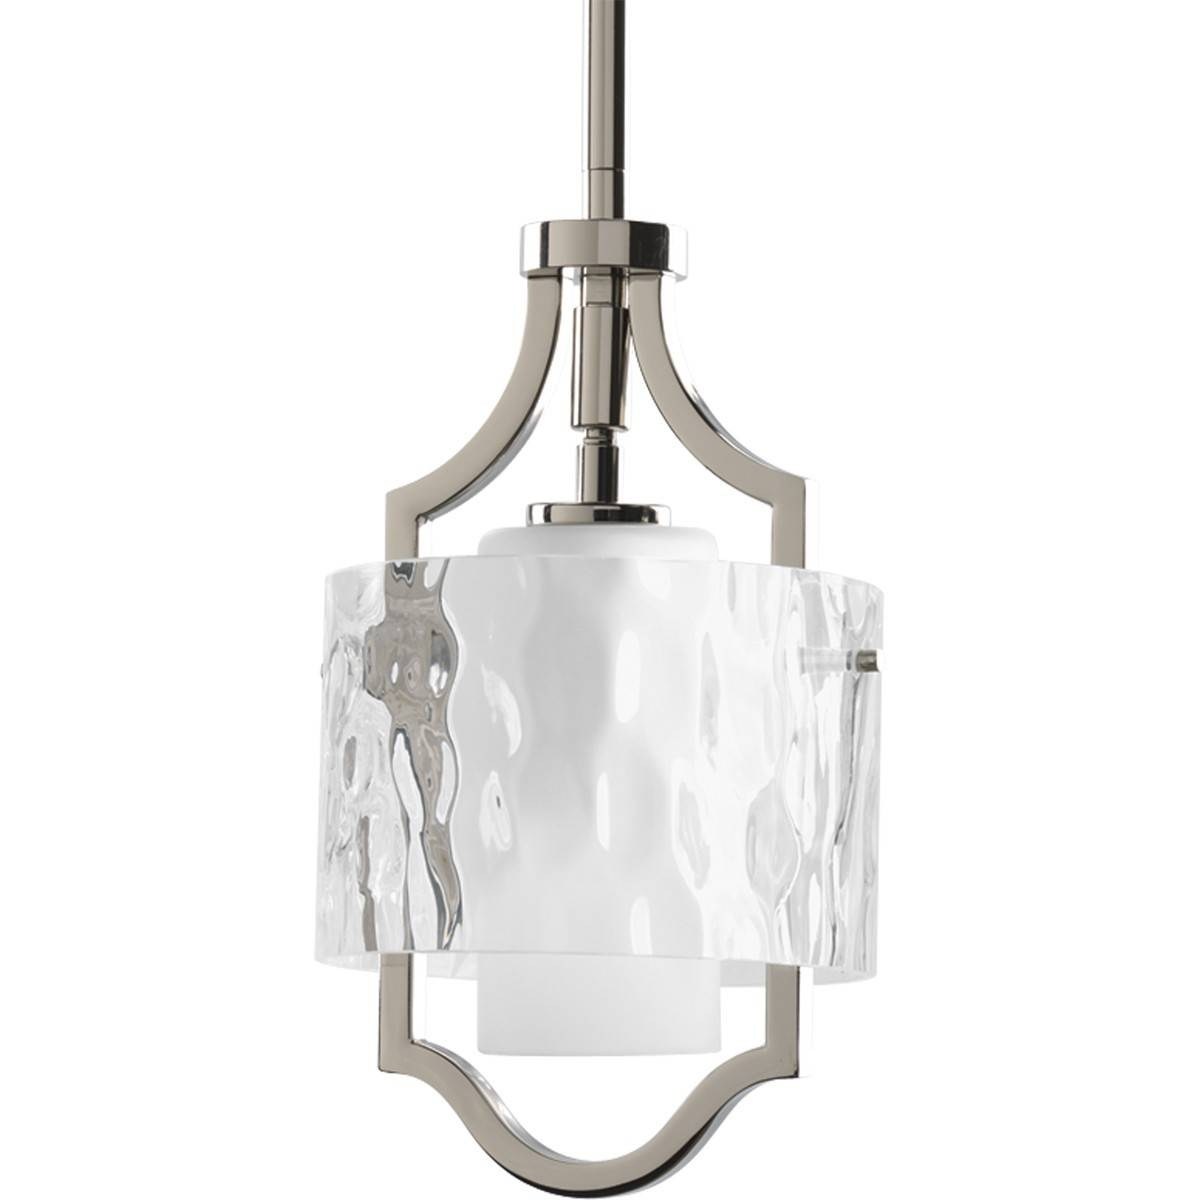 Clear Glass Mini Pendant Light Fixture With Etched Diffuser Inside With Regard To Clear Glass Mini Pendant Lights (View 4 of 15)